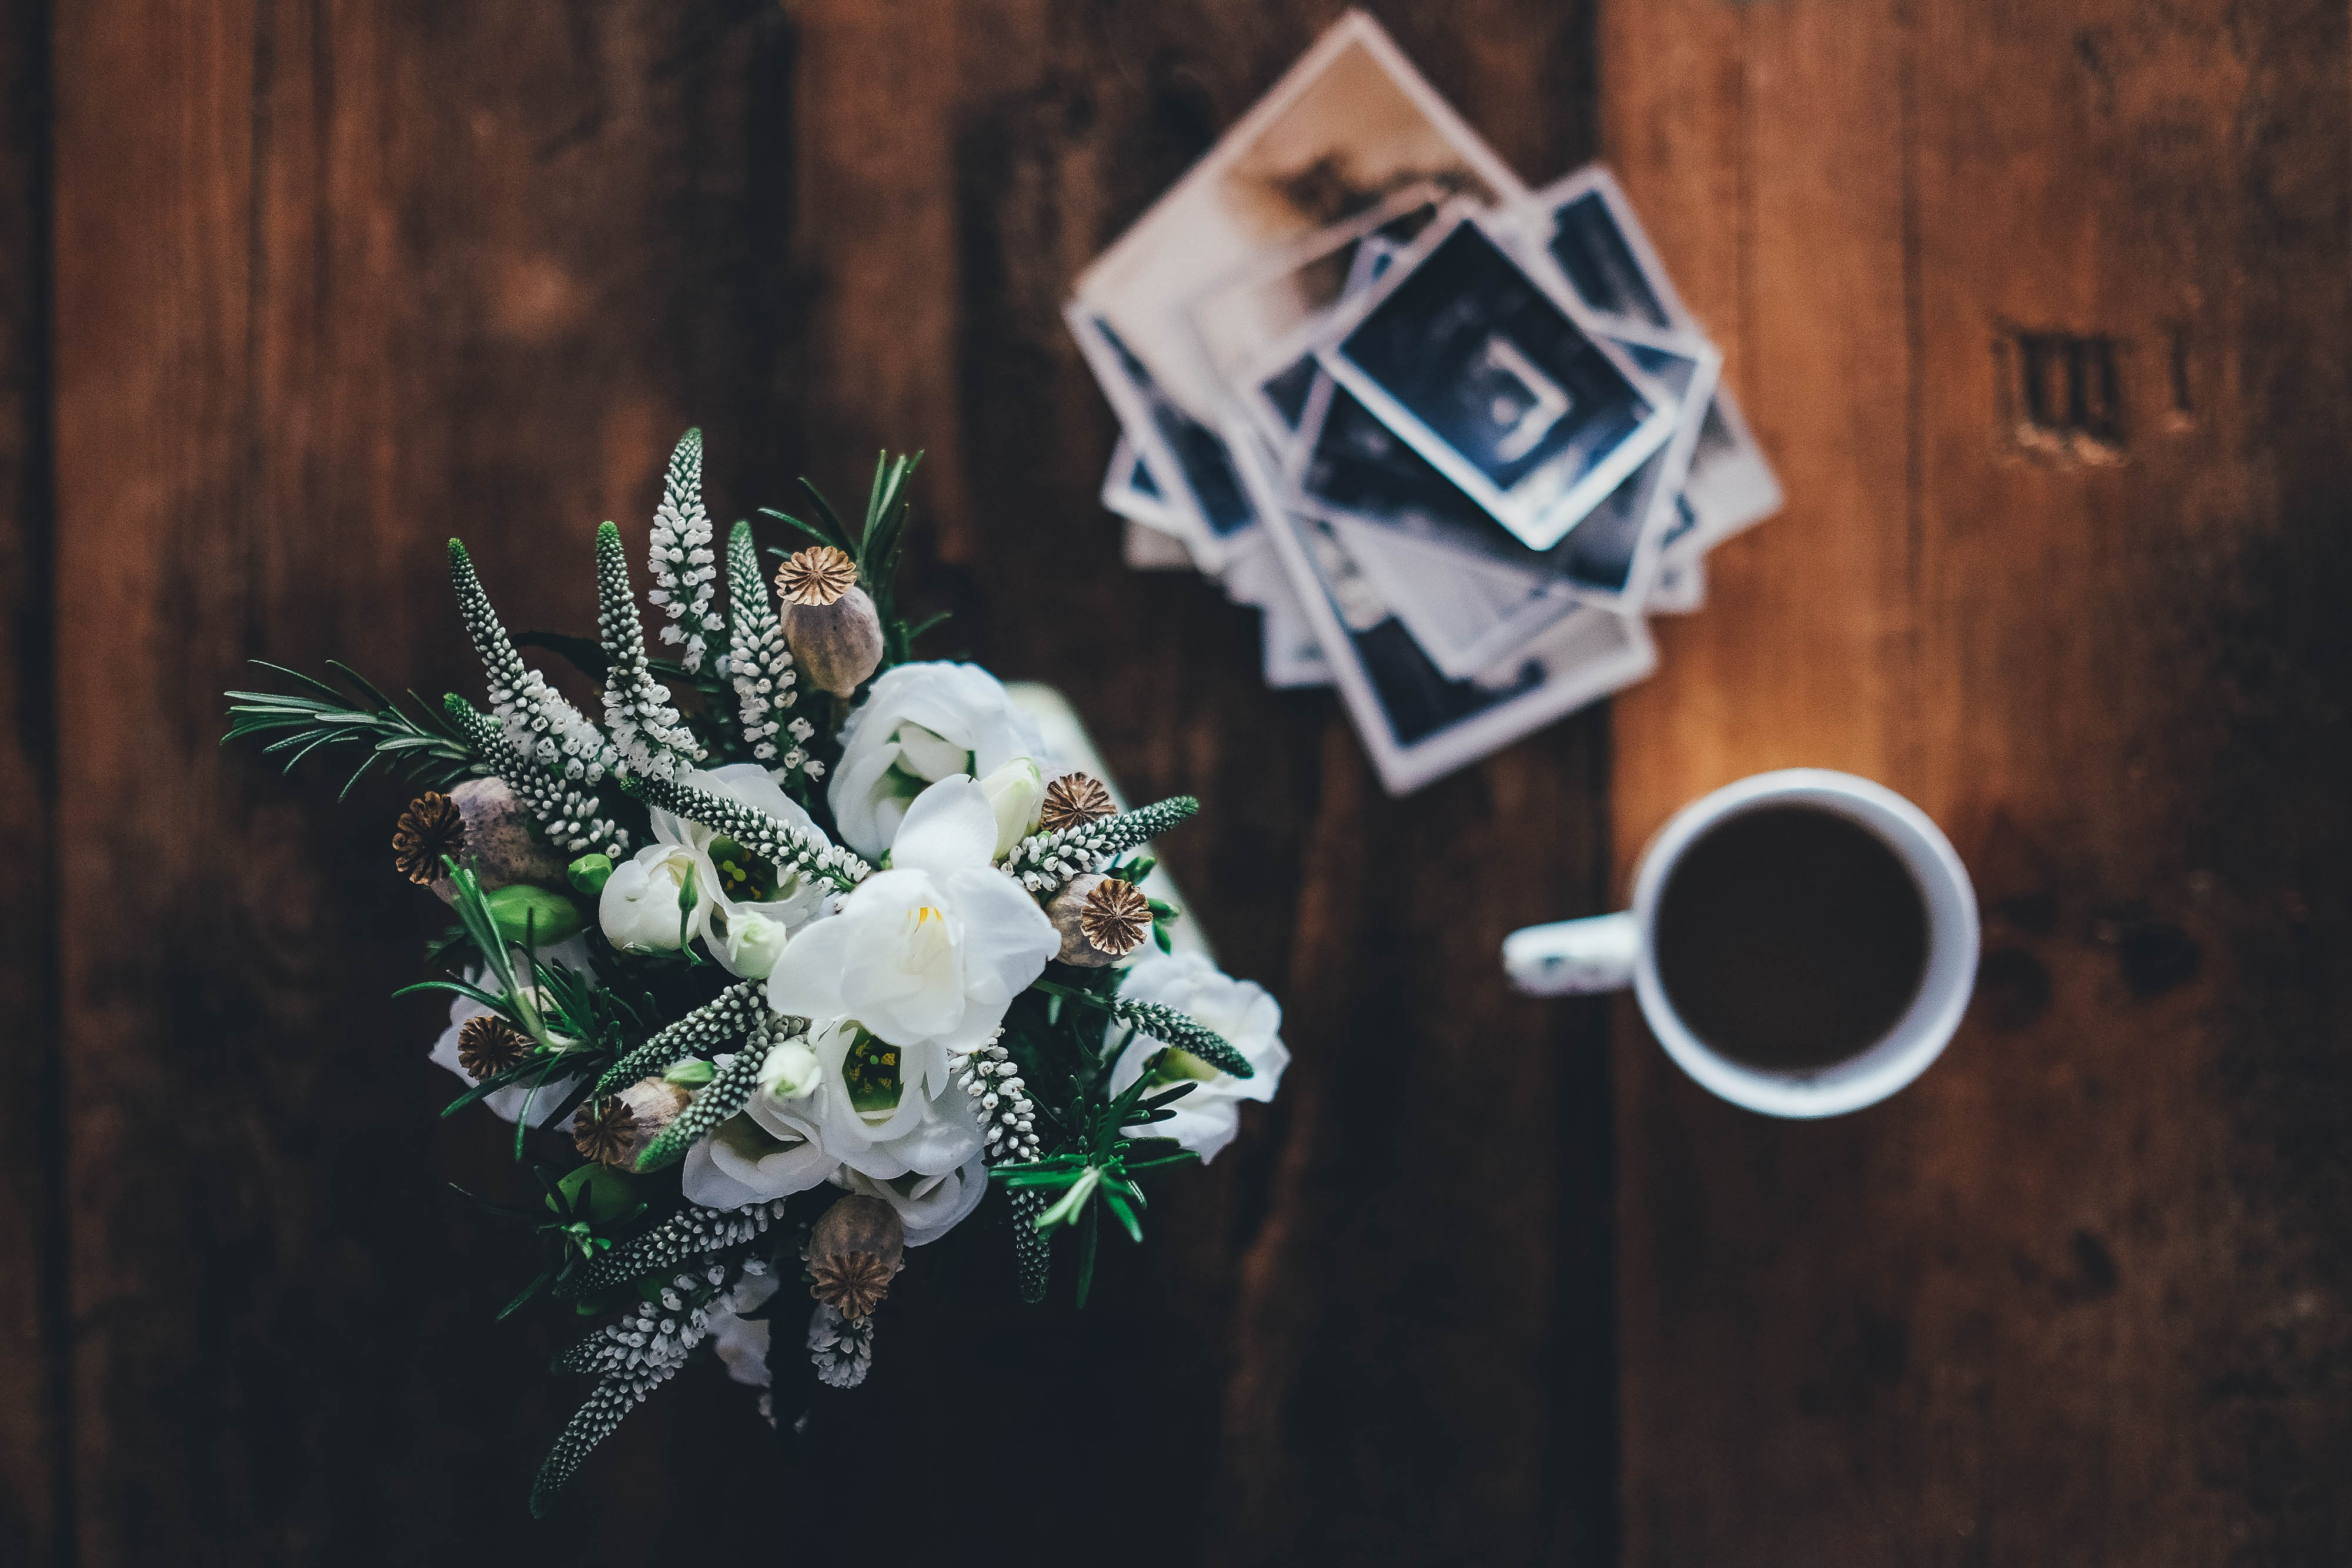 An overhead shot of a bouquet of flowers next to a cup of coffee and a stack of photographs